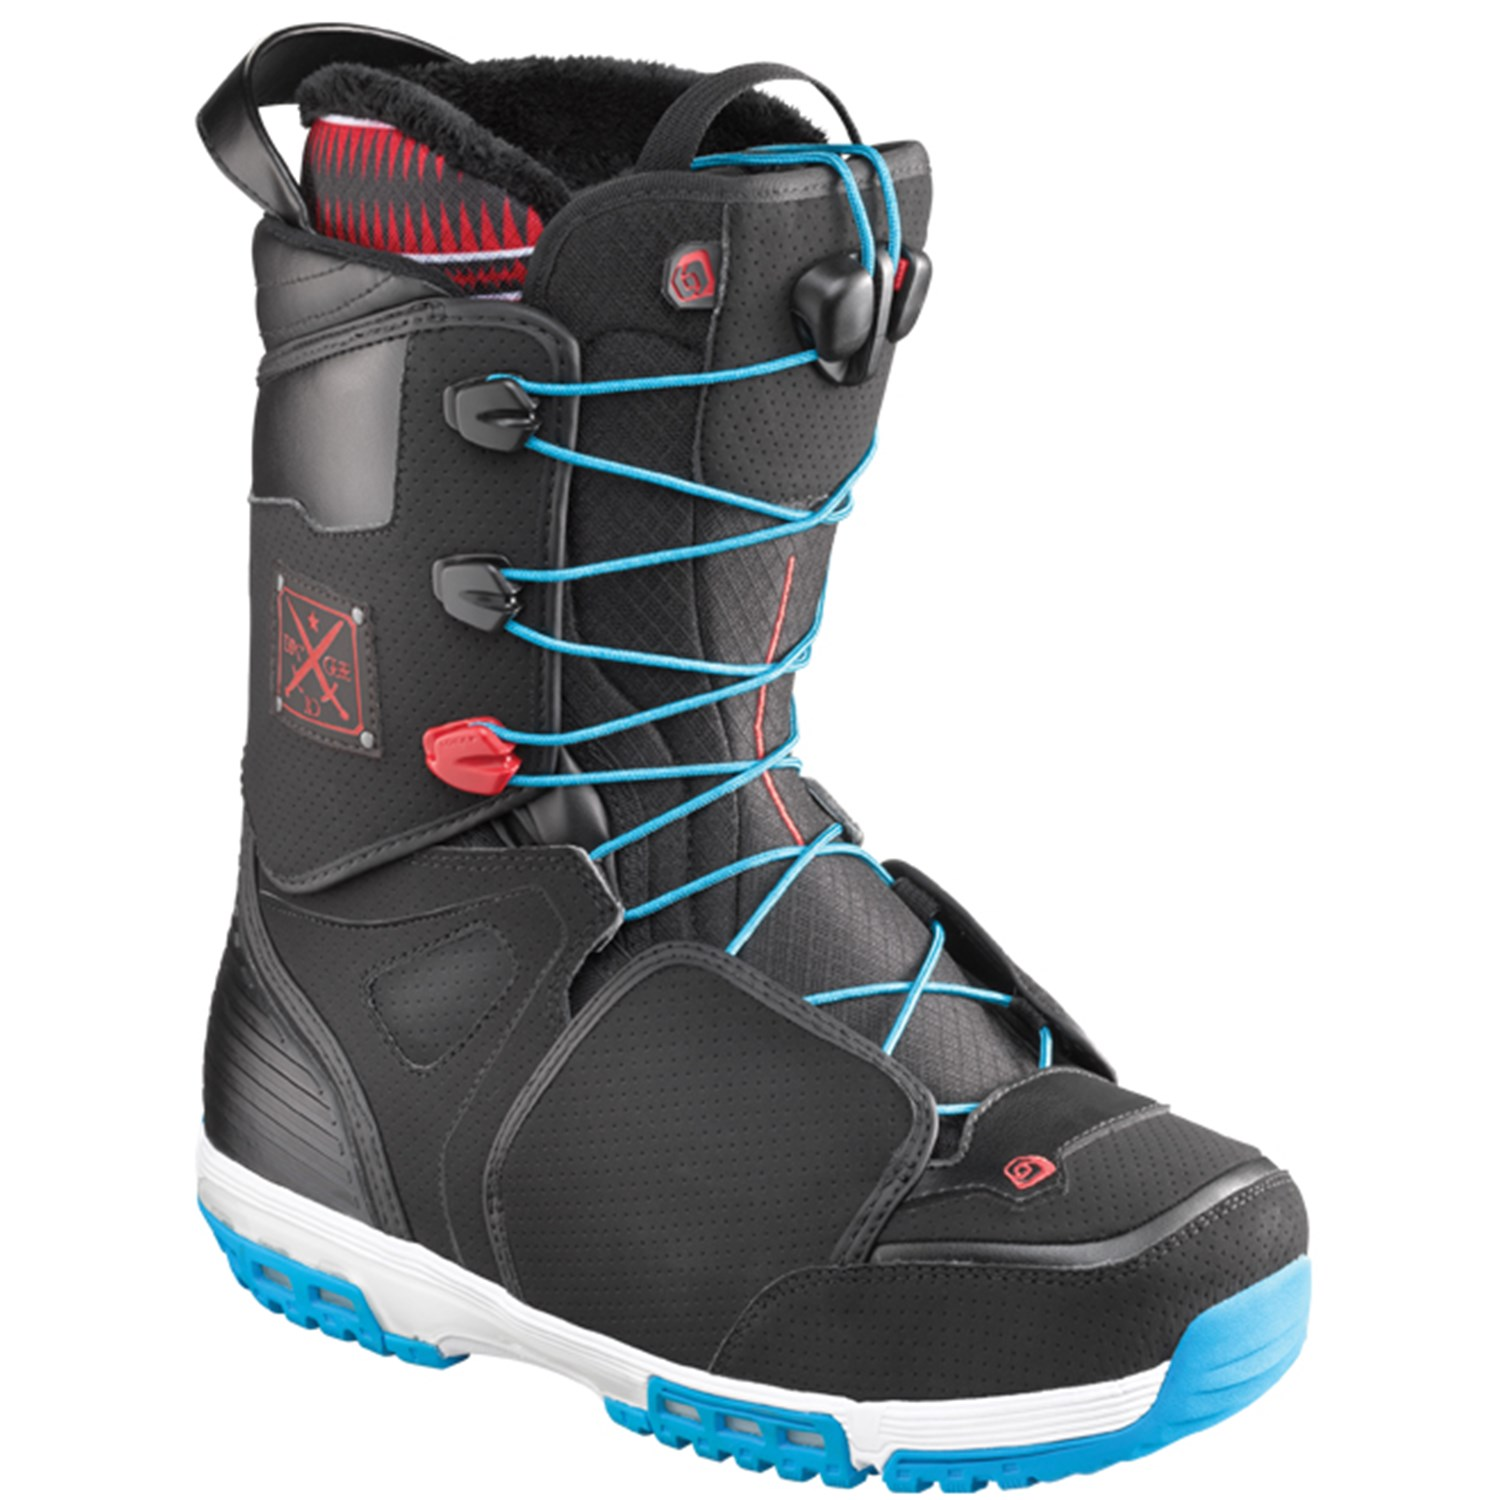 Salomon Dialogue Wide Snowboard Boots Demo 2012 Evo Outlet